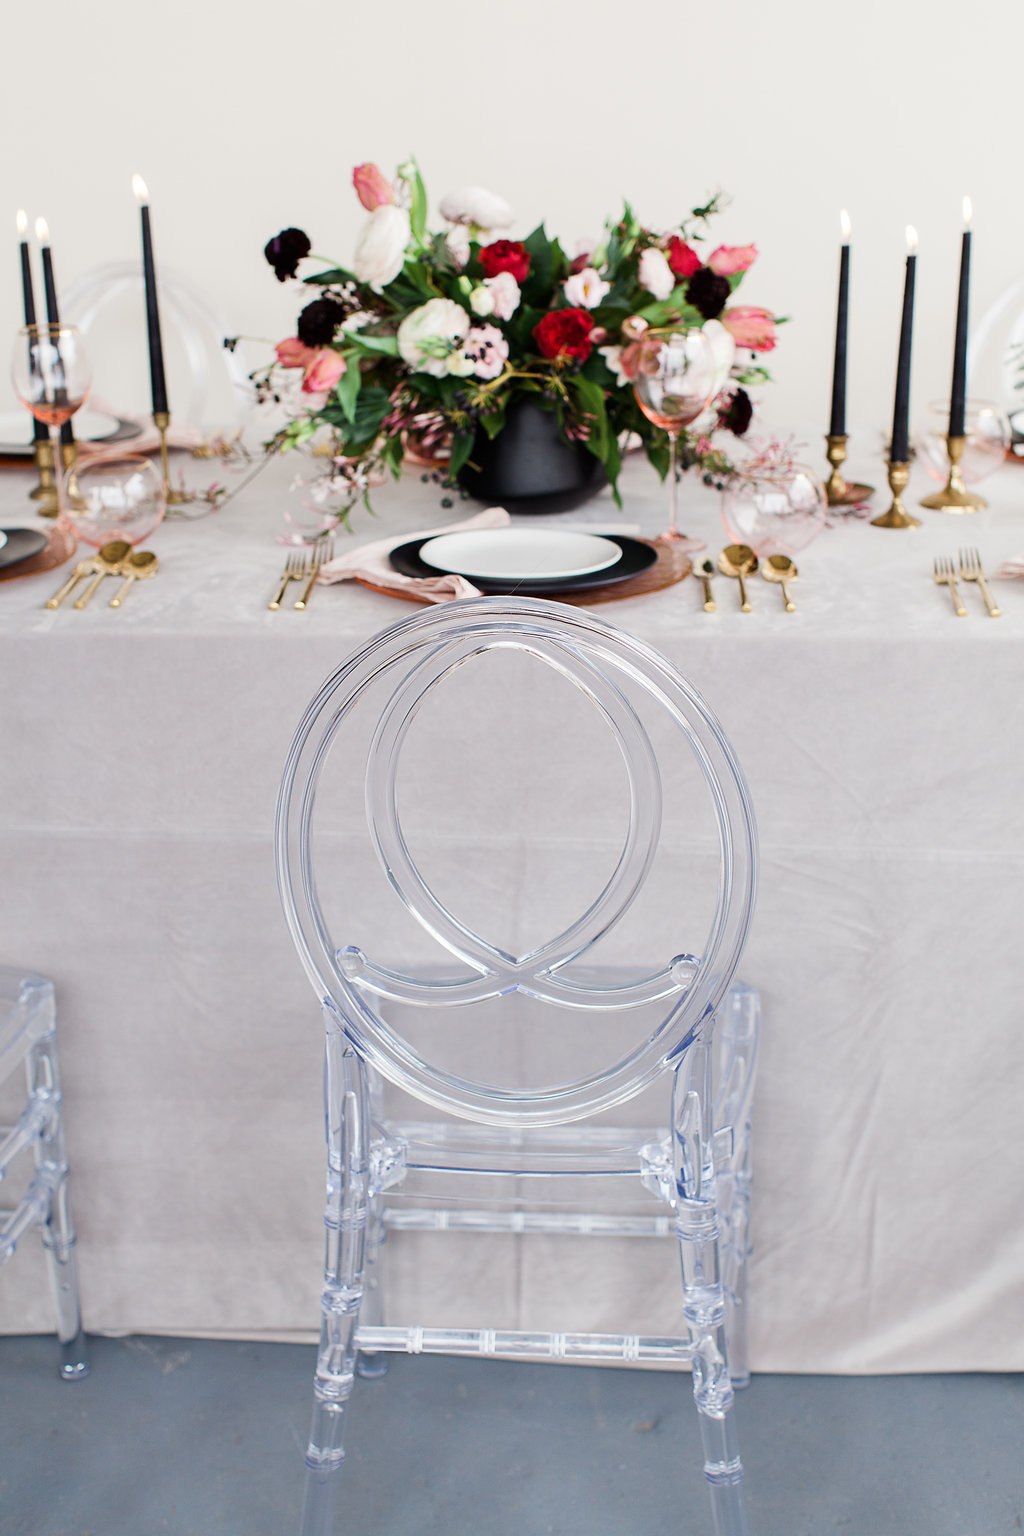 acrylic-chair-dayton-wedding-planner-corporate-event-valentine's-dinner.jpg